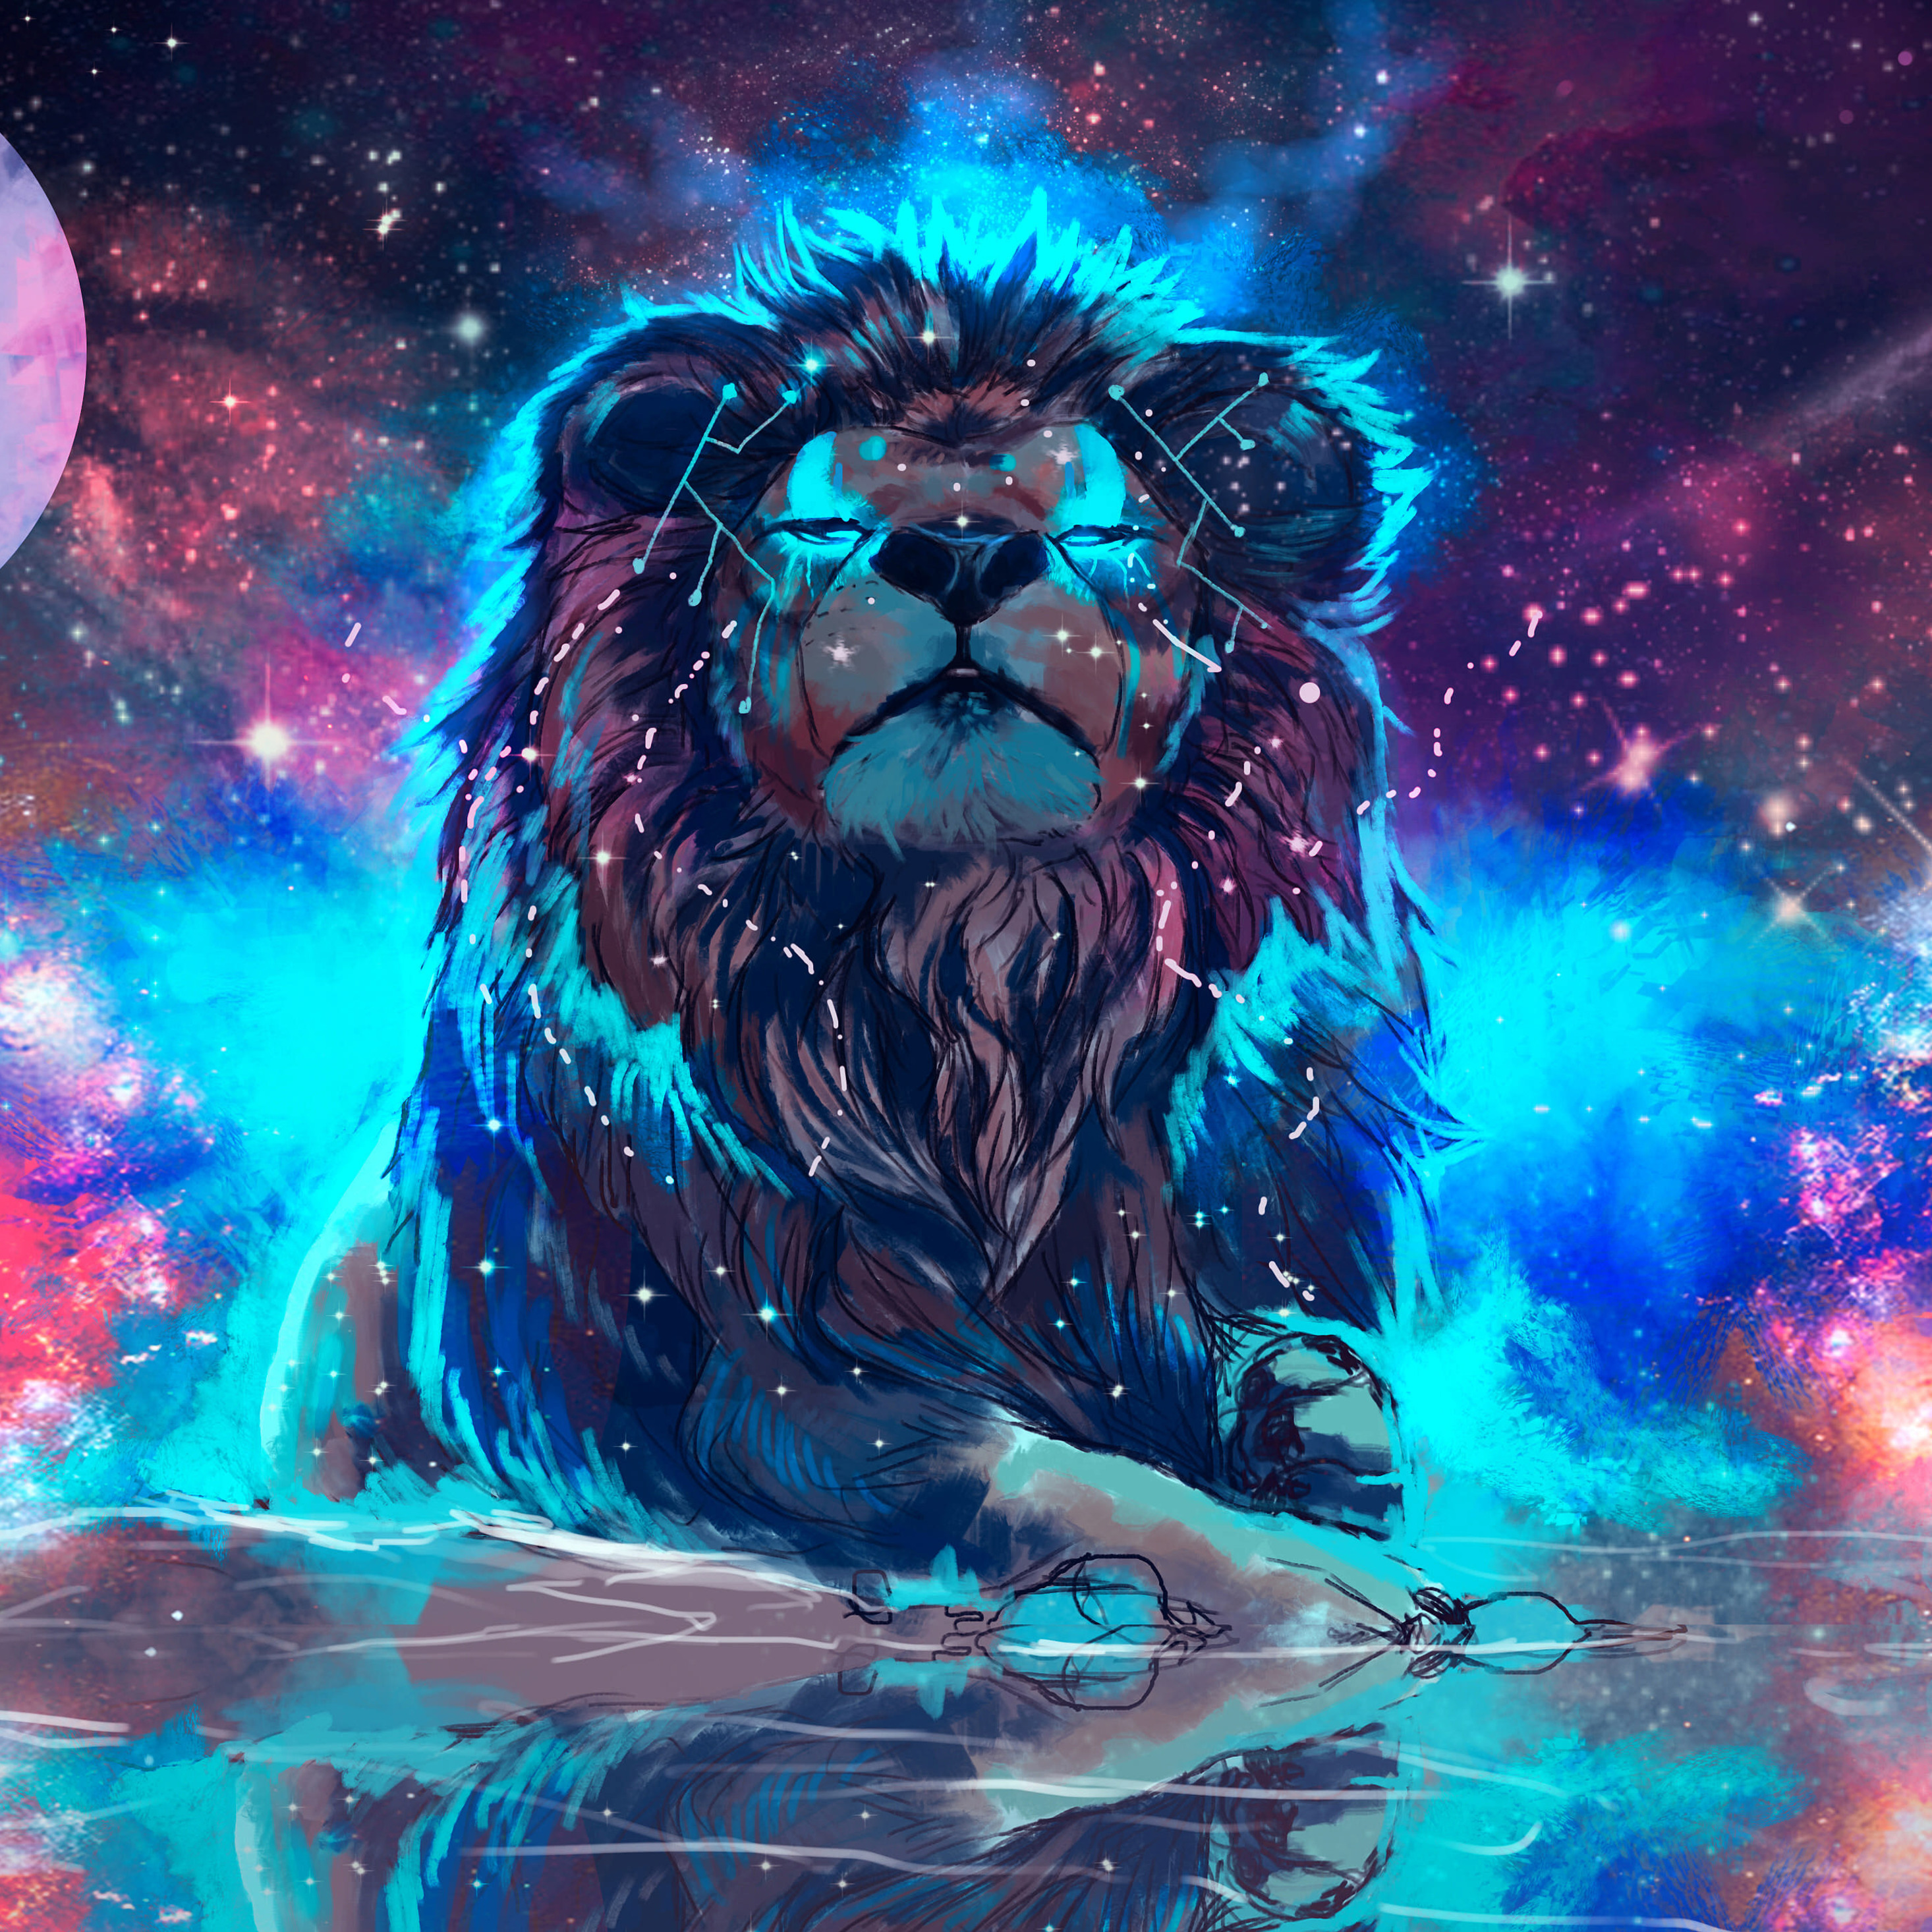 2932x2932 Lion 4k Artistic Colorful Ipad Pro Retina Display Hd 4k Wallpapers Images Backgrounds Photos And Pictures